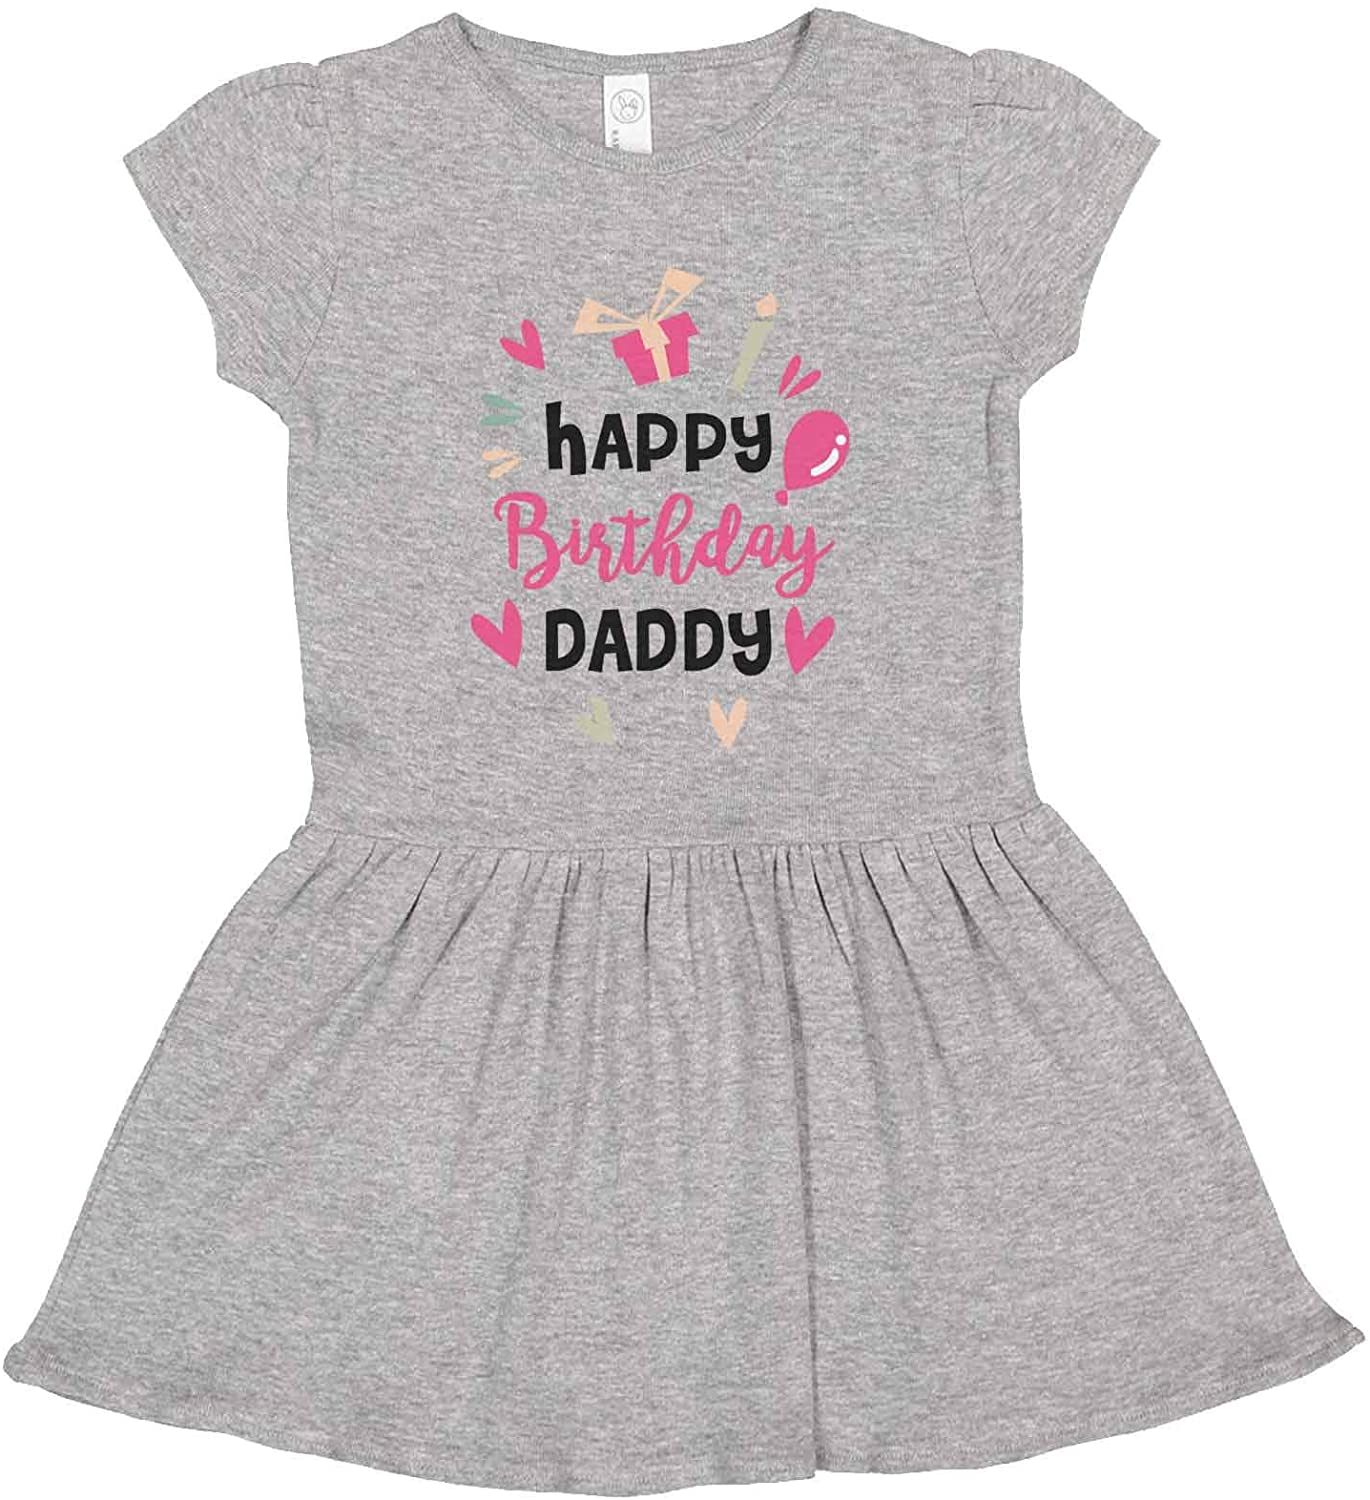 """Funny Threadz Adorable Girls Dress 3 Colors """"Happy Birthday Daddy"""" Kids Casual Toddler Dress"""